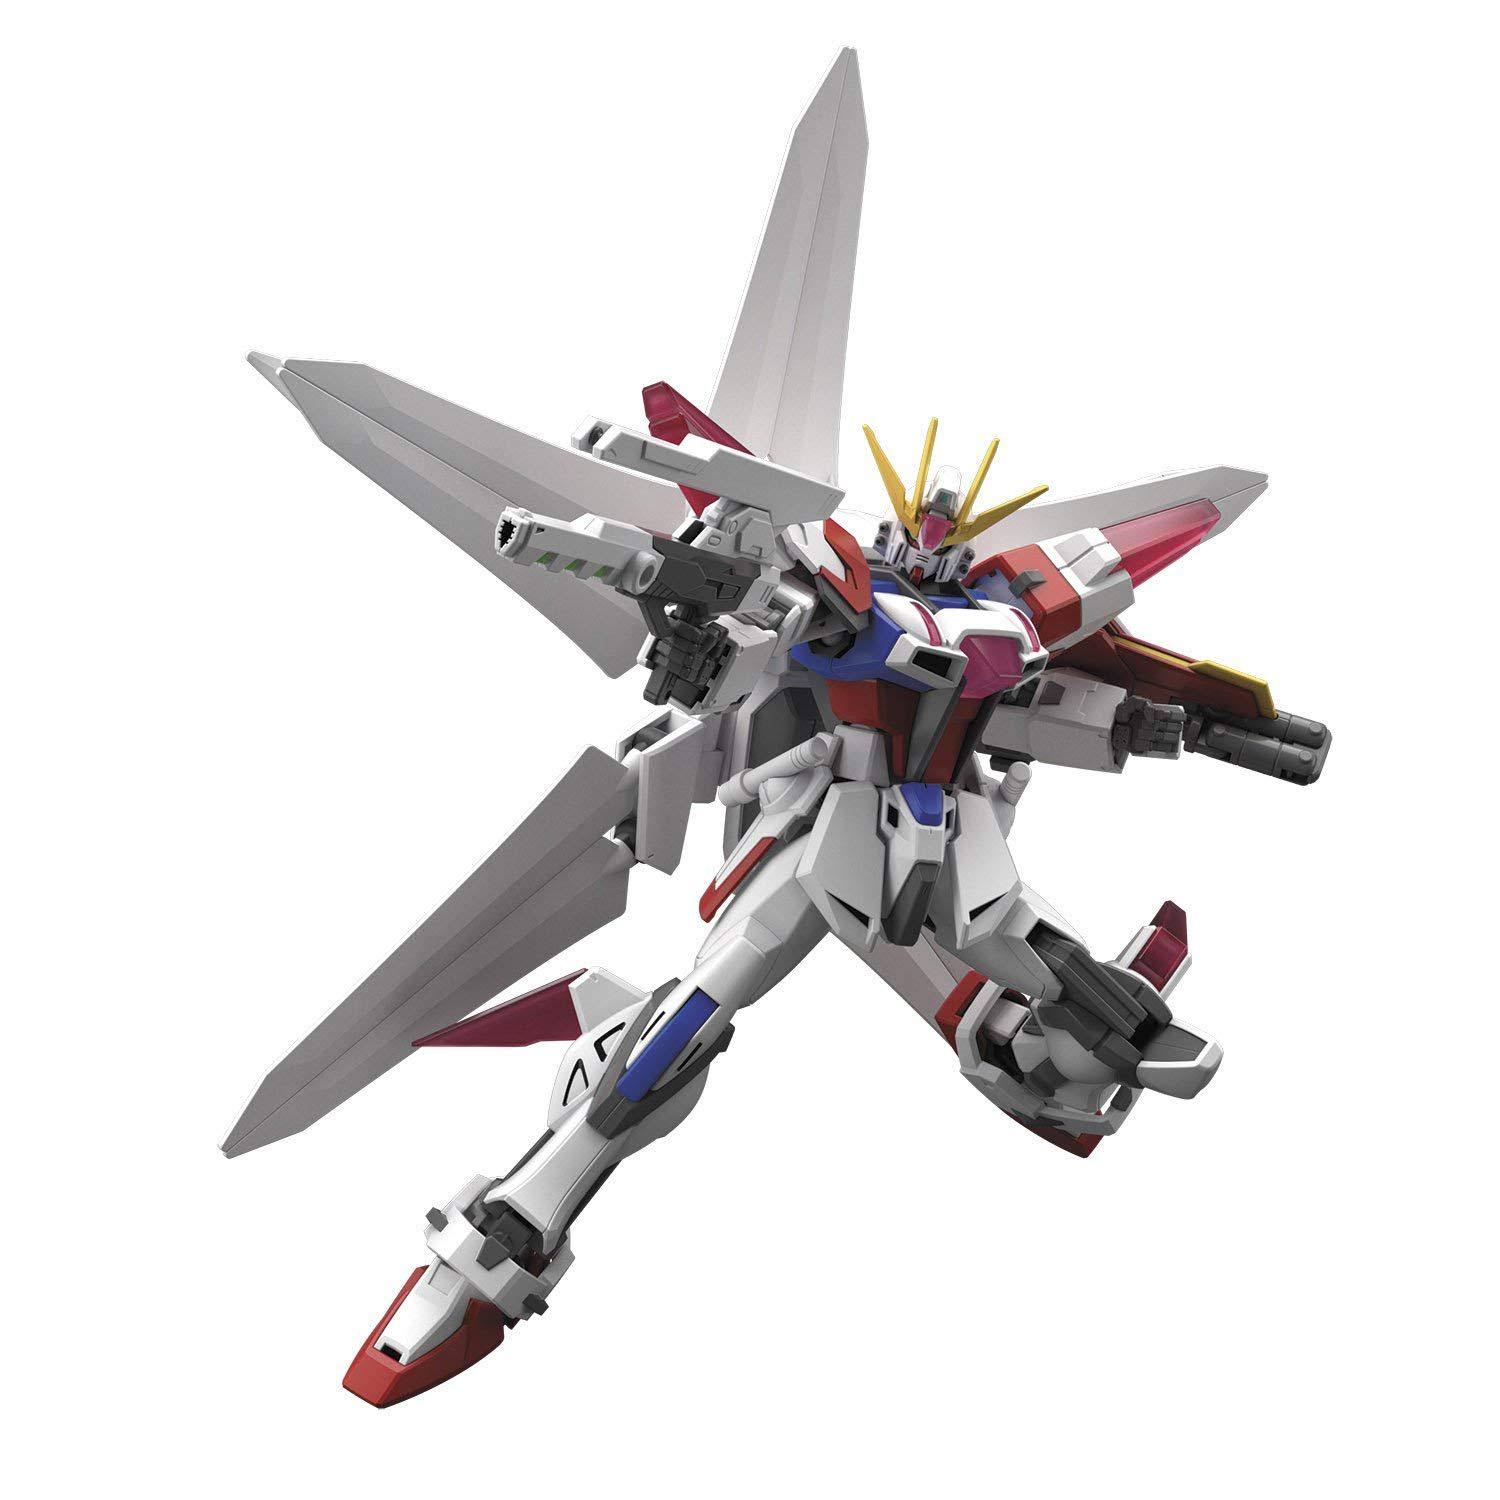 Bandai HGBF Gundam Build Fighters: Build Strike Galaxy Cosmos Model Kit - 1/144 Scale